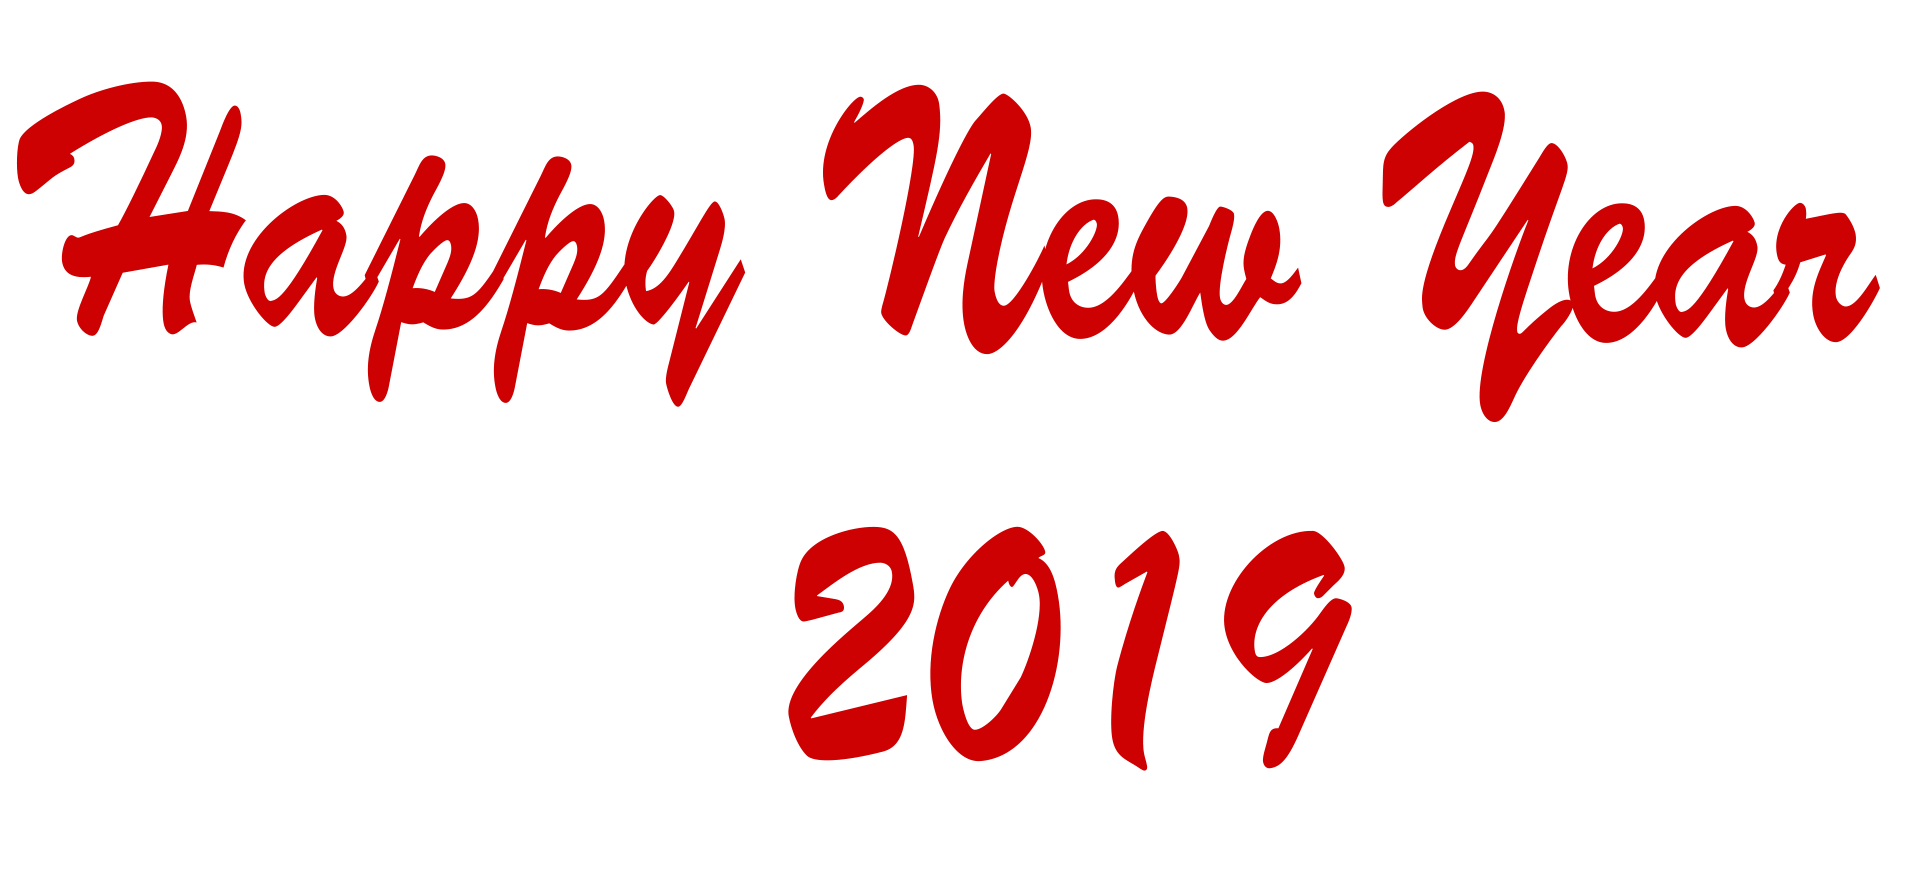 Happy New Year 2019 PNG Image File.